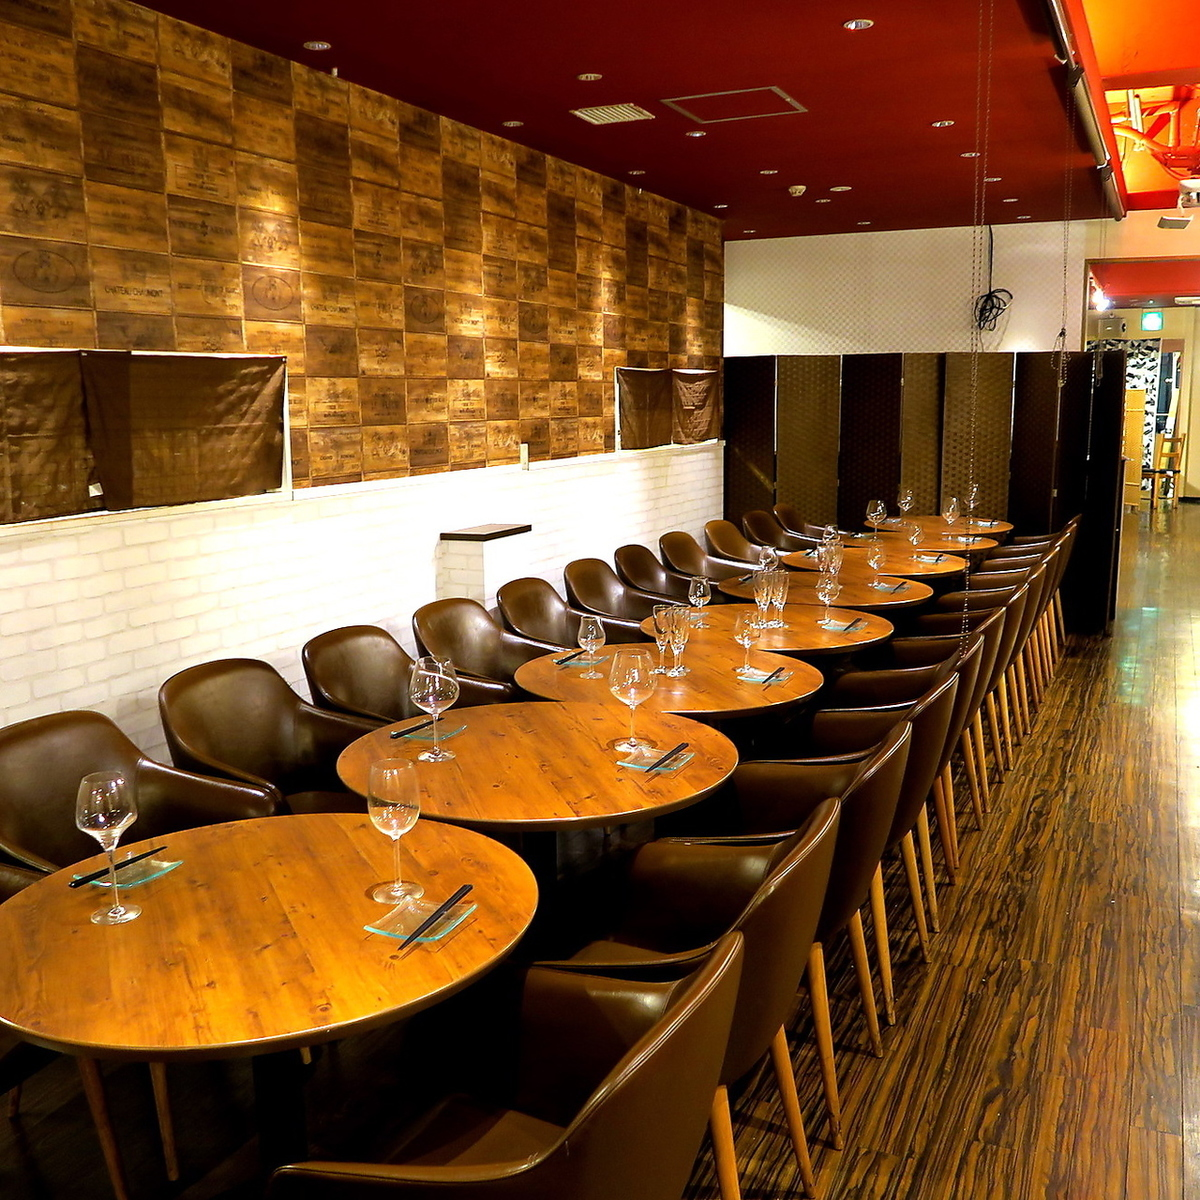 Spacious seats are also available for groups.Please feel free to contact us.